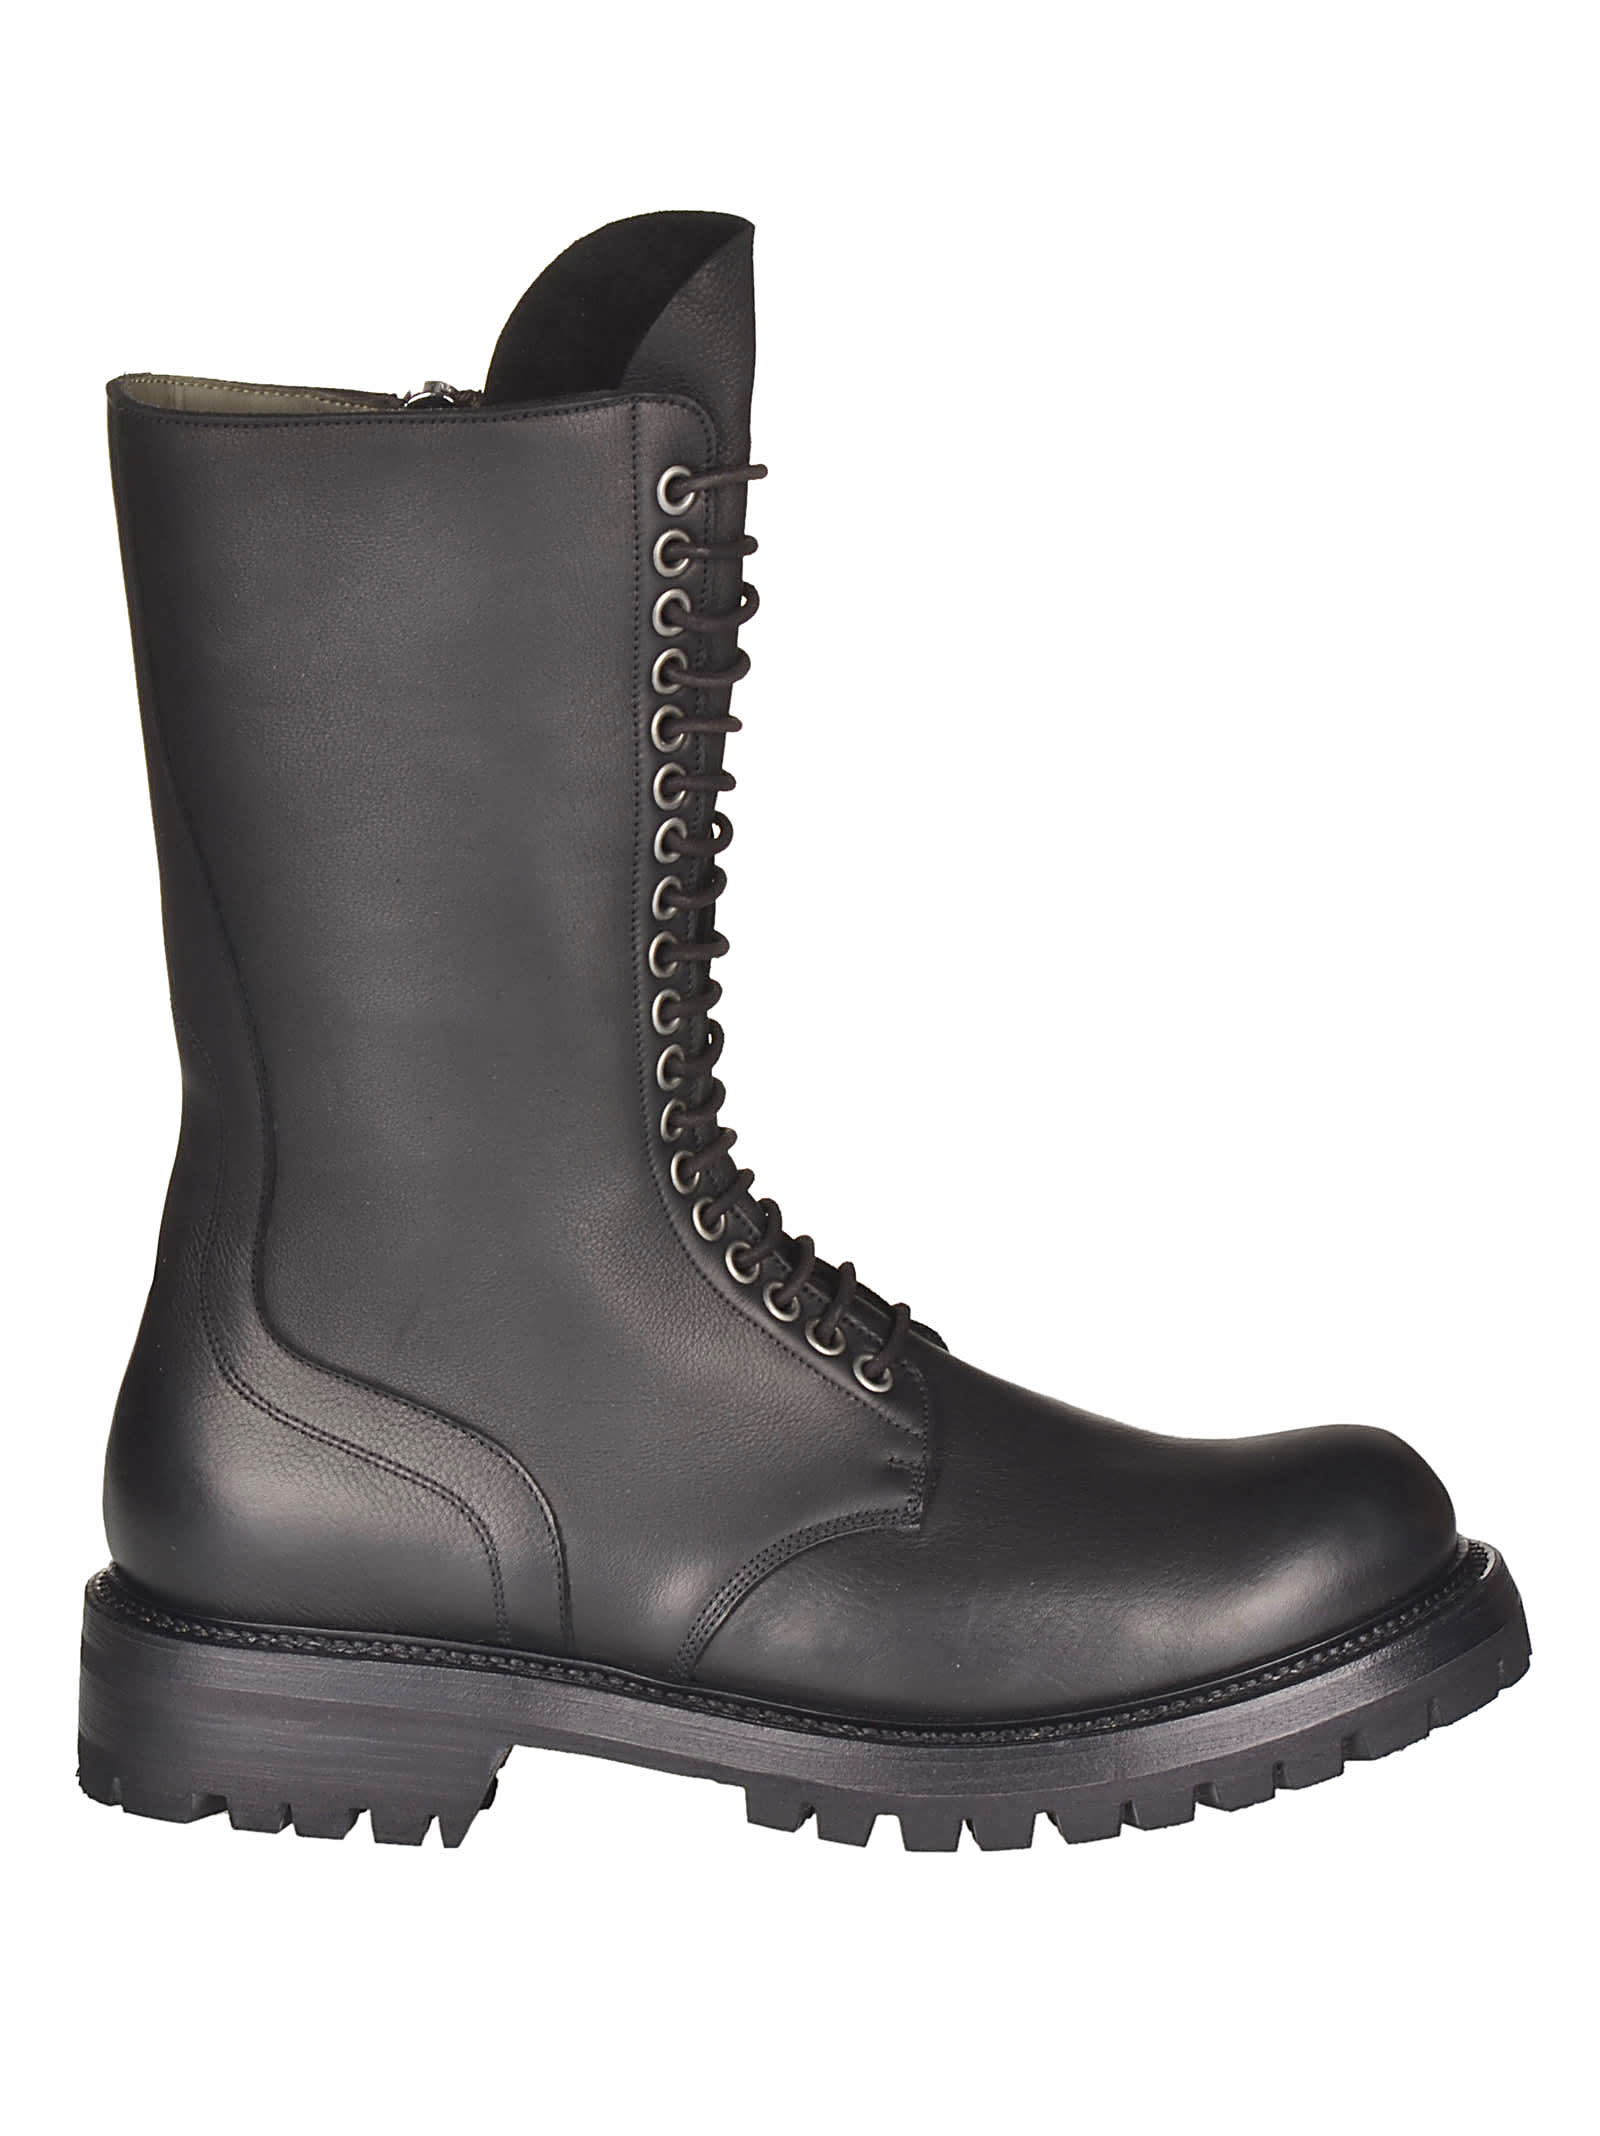 Rick Owens Zipped Army Boots